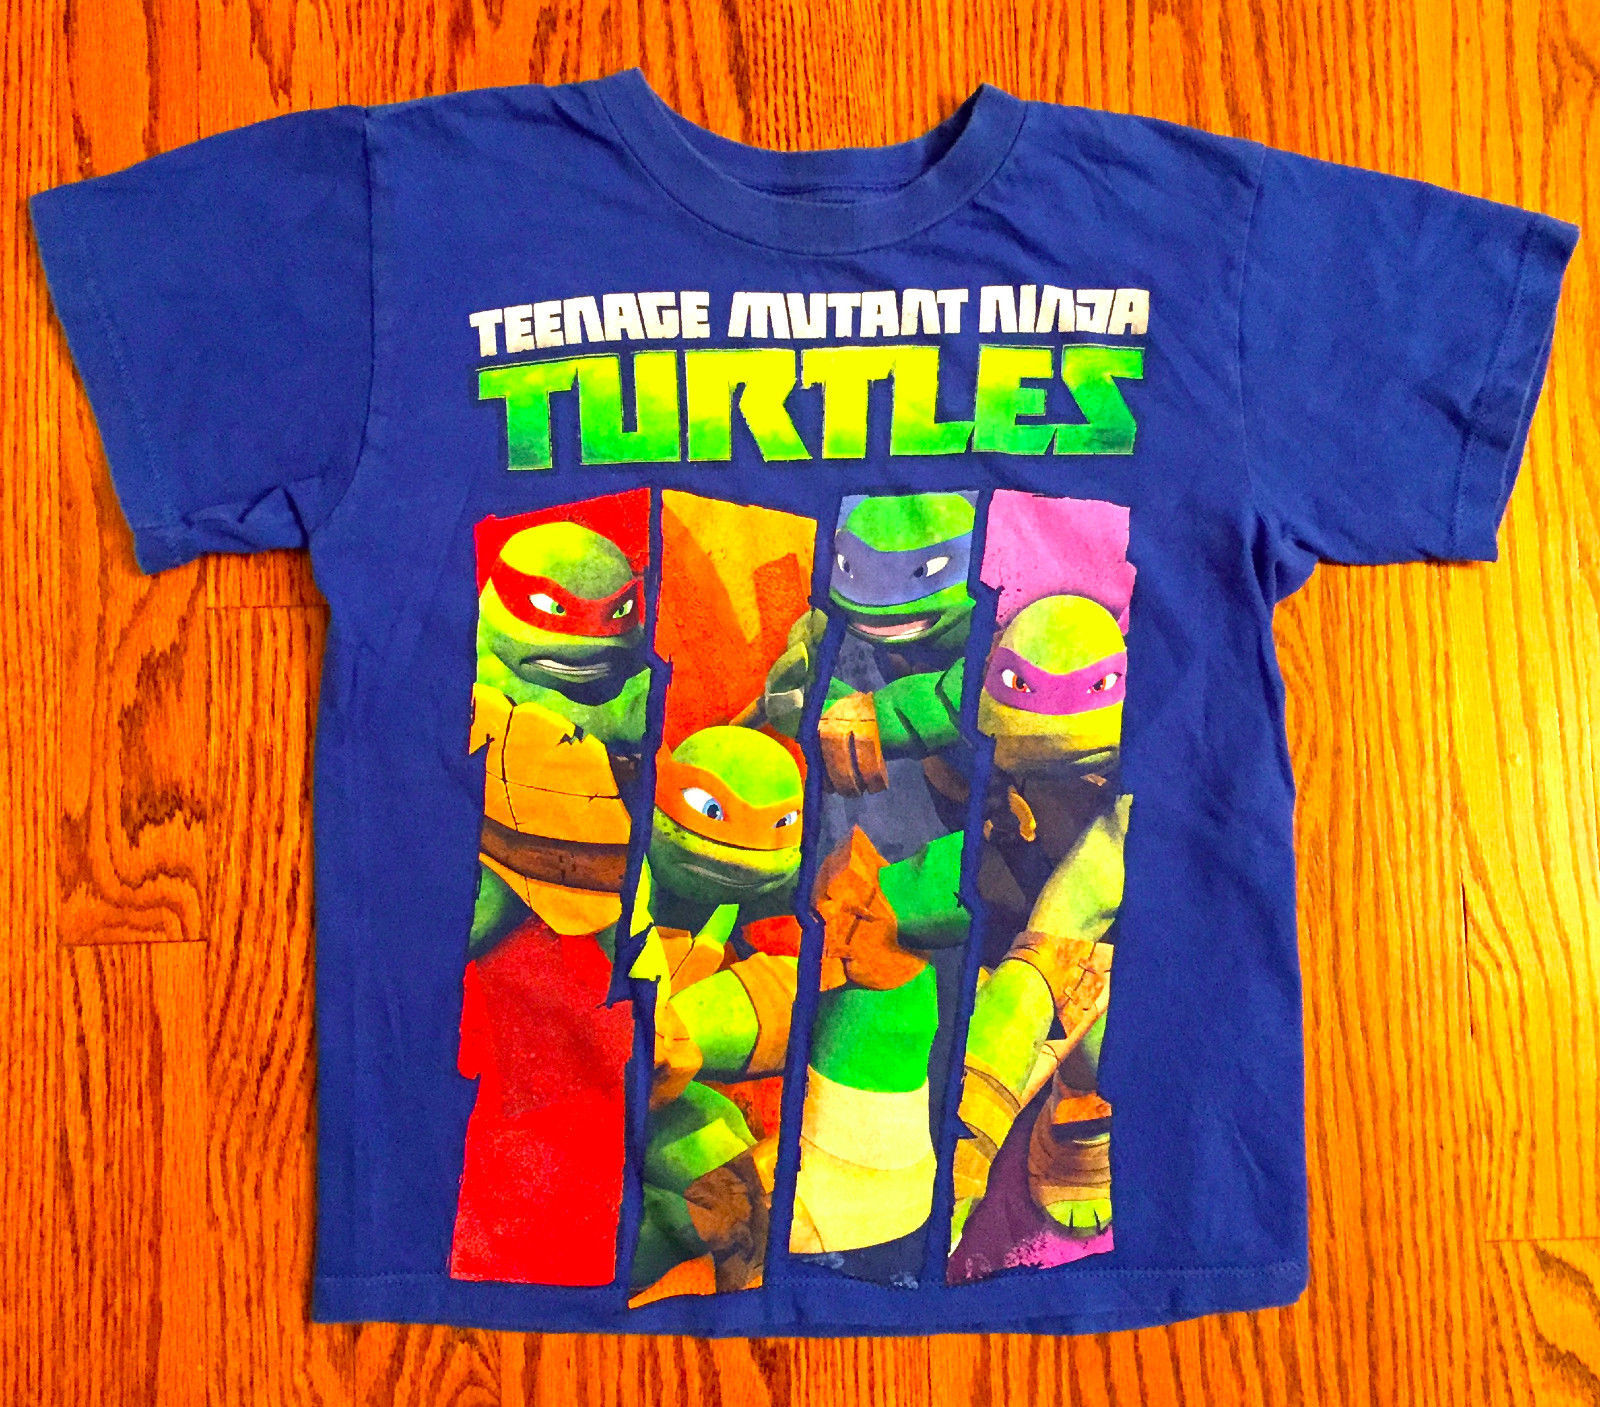 BOYS SZ M BLUE & GREEN TEENAGE MUTANT NINJA TURTLE NICKELODEON T-SHIRT